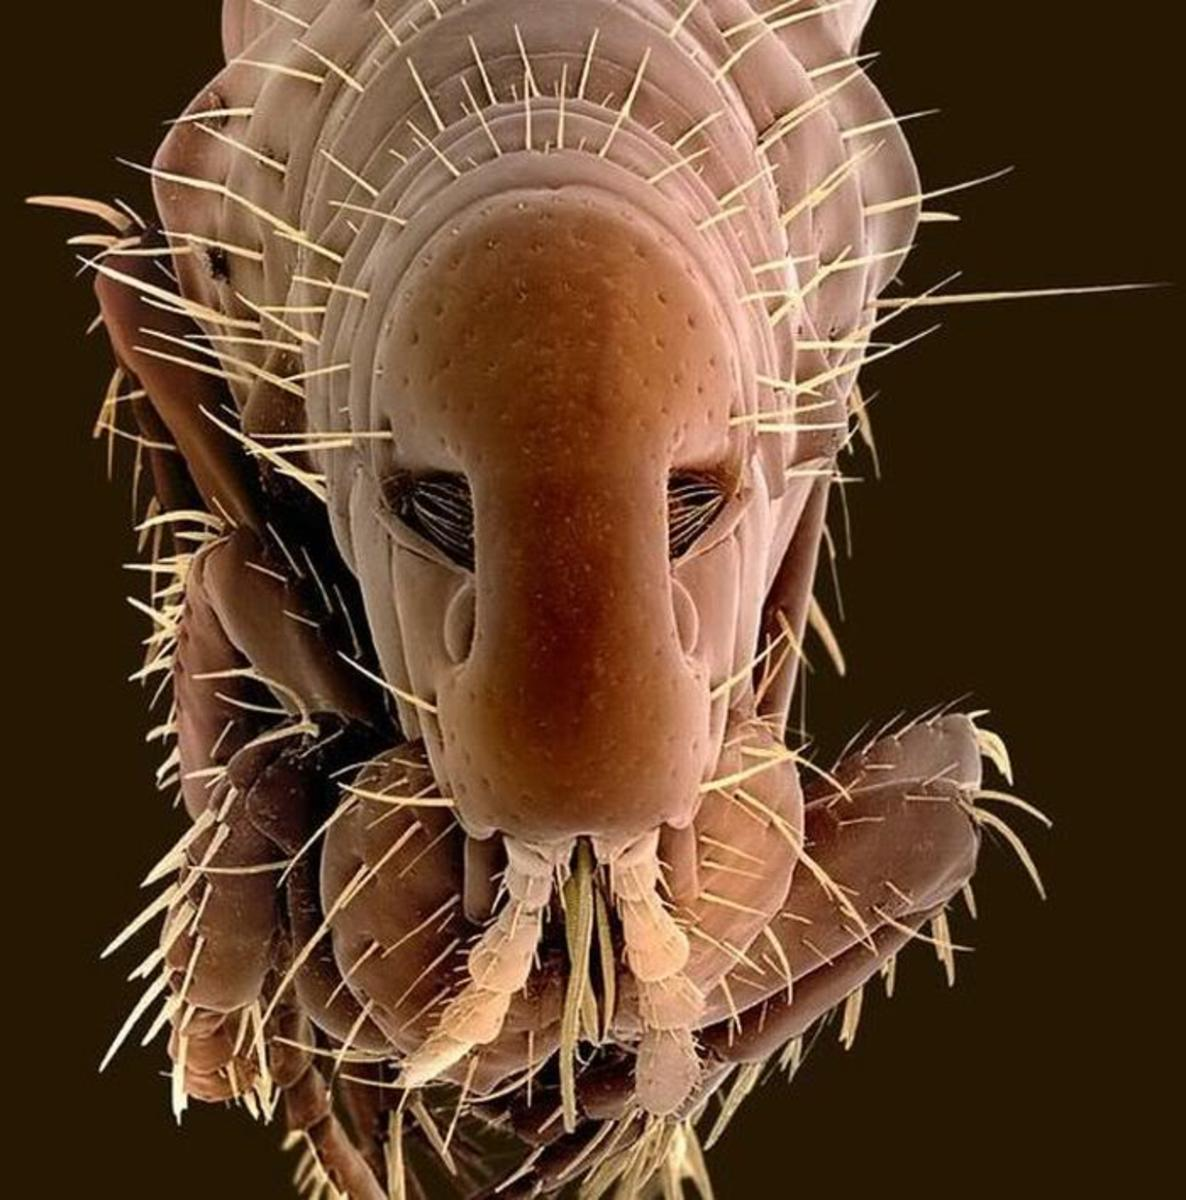 Portrait of a flea through an electron microscope.